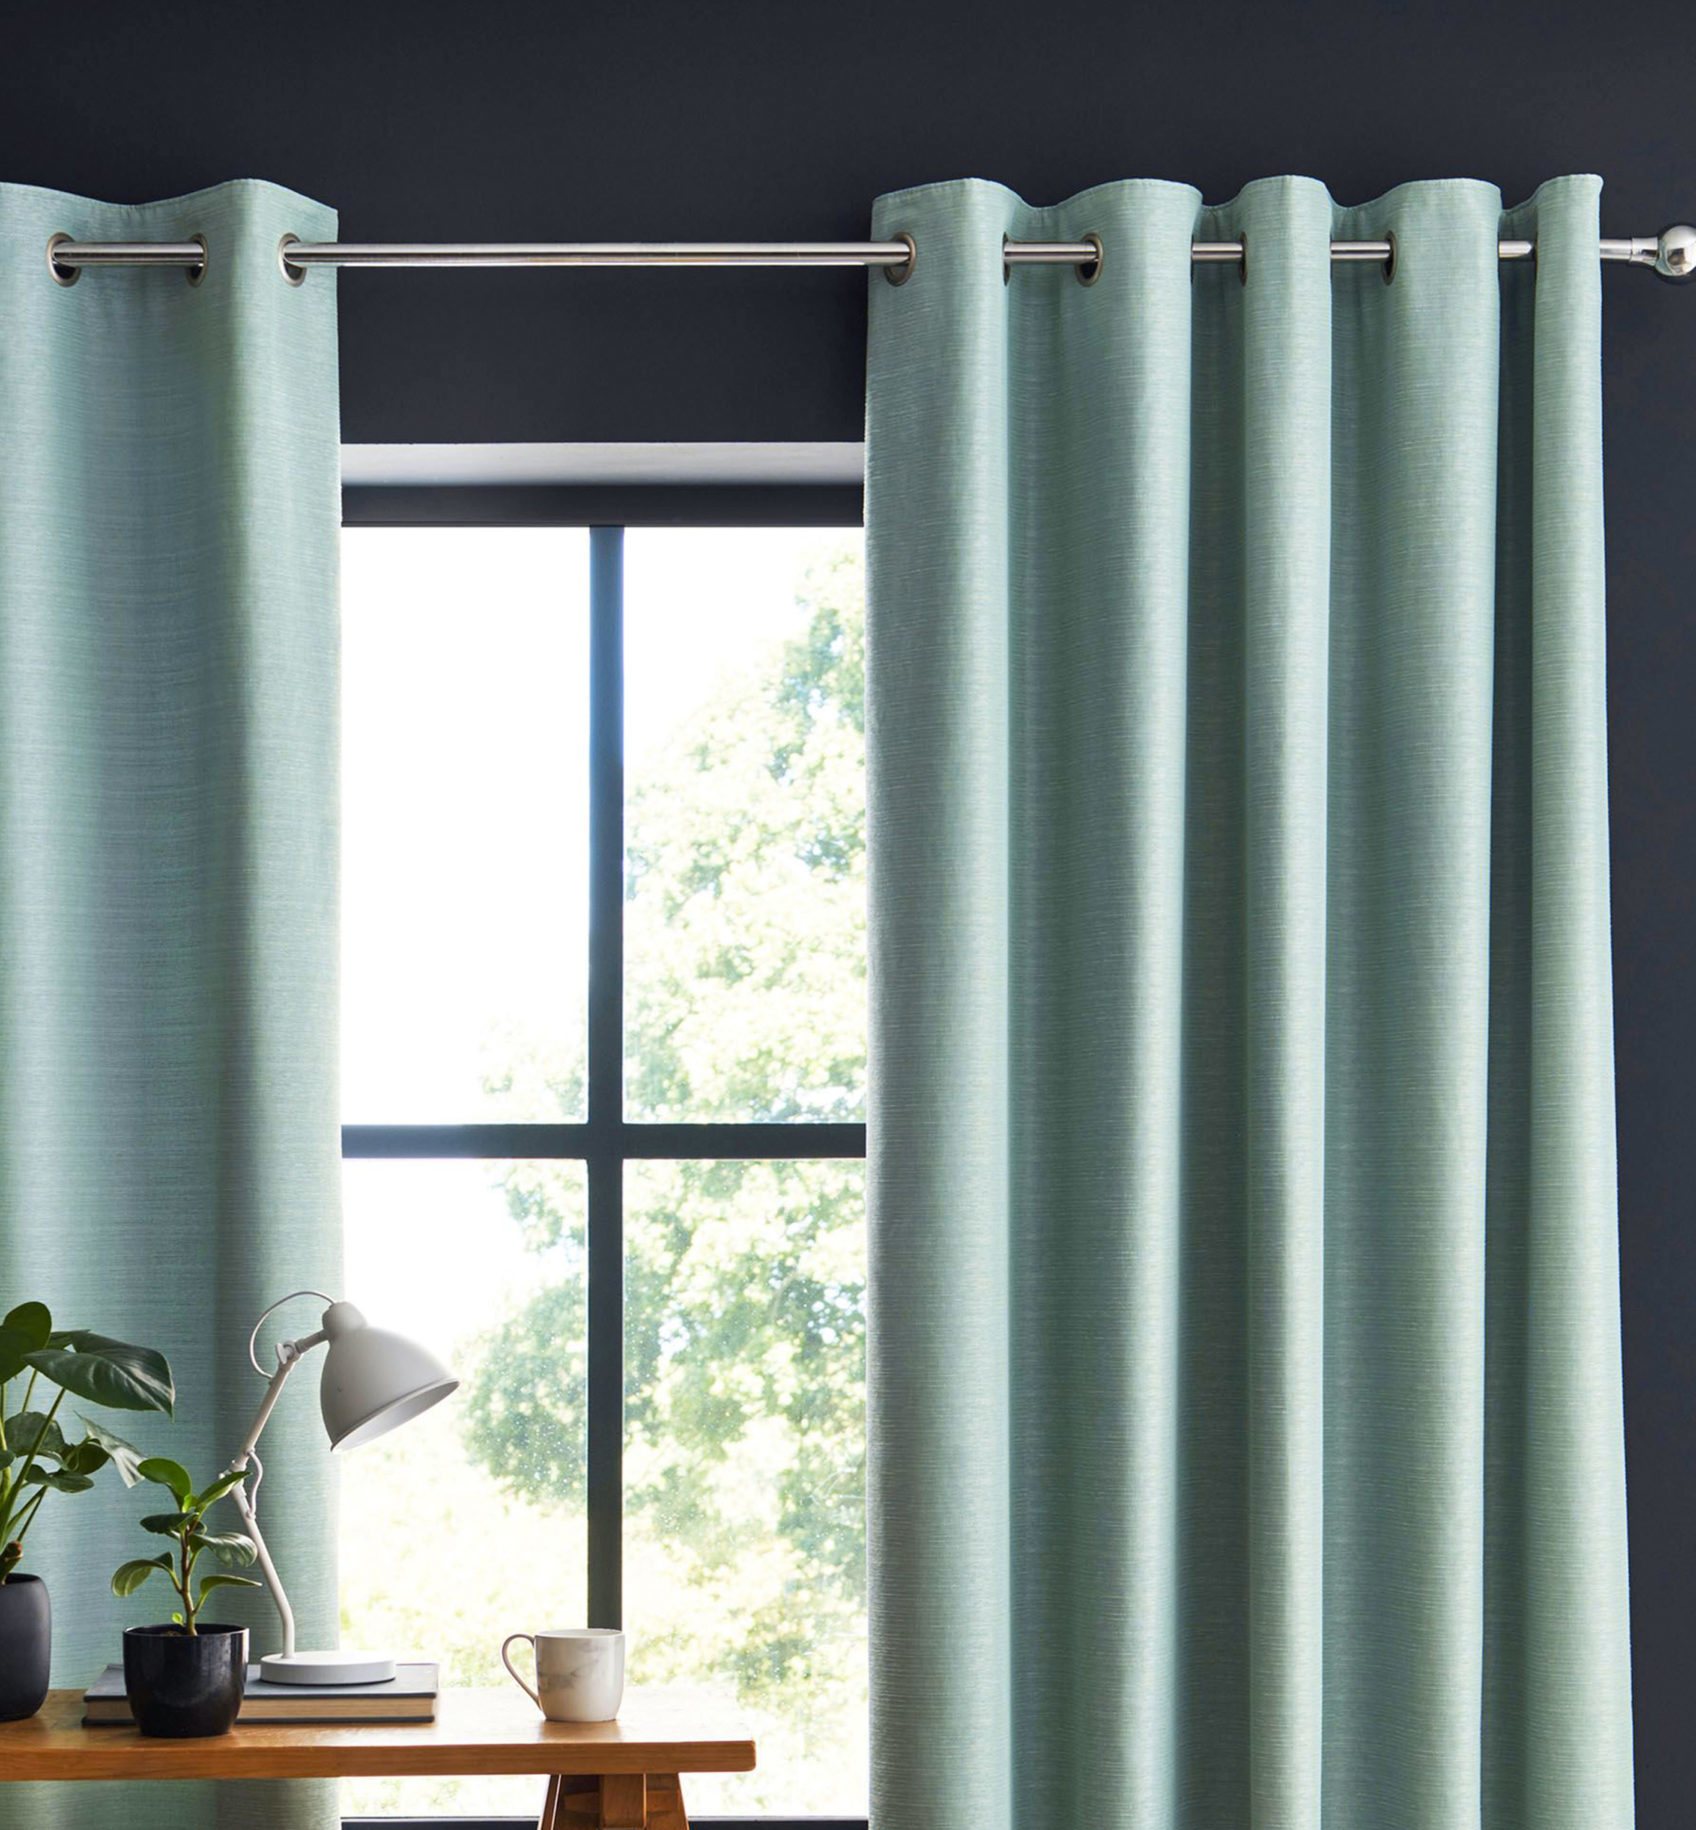 senfa curtains fire retardant blackout